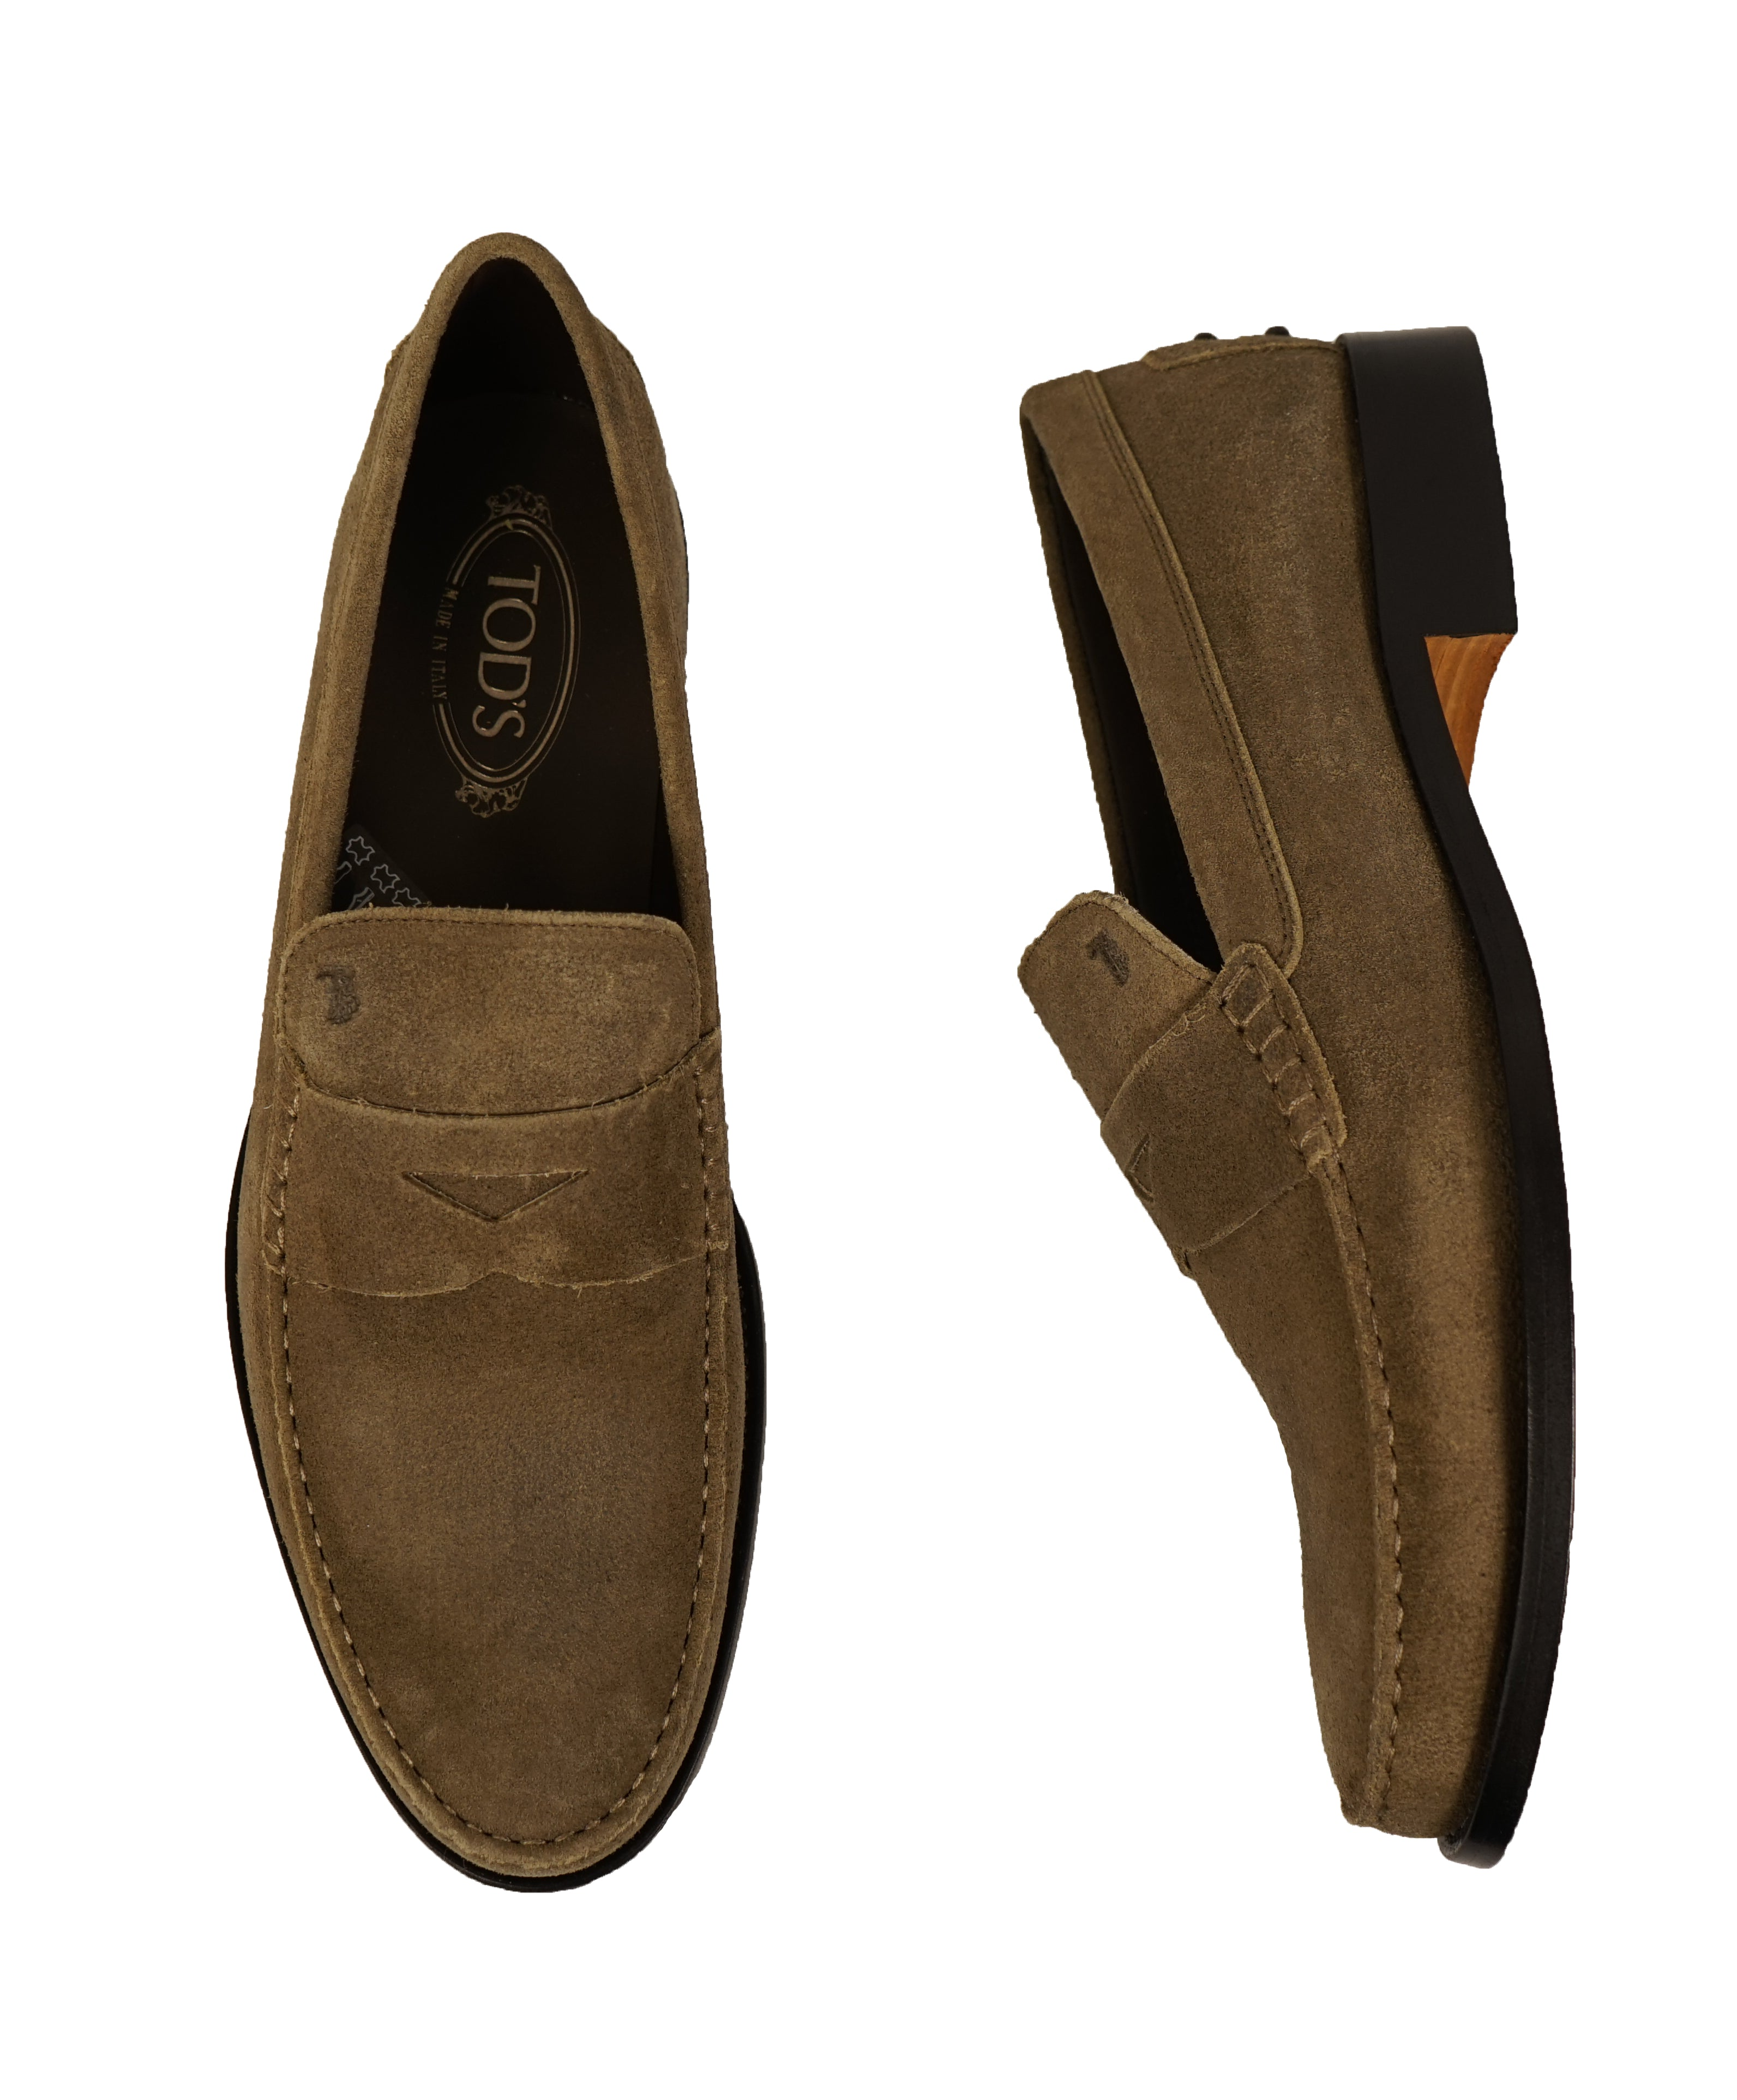 "TOD'S - Brown Distressed Suede Penny Loafers ""Boston"" ""Devon"" Leather Sole - 12"